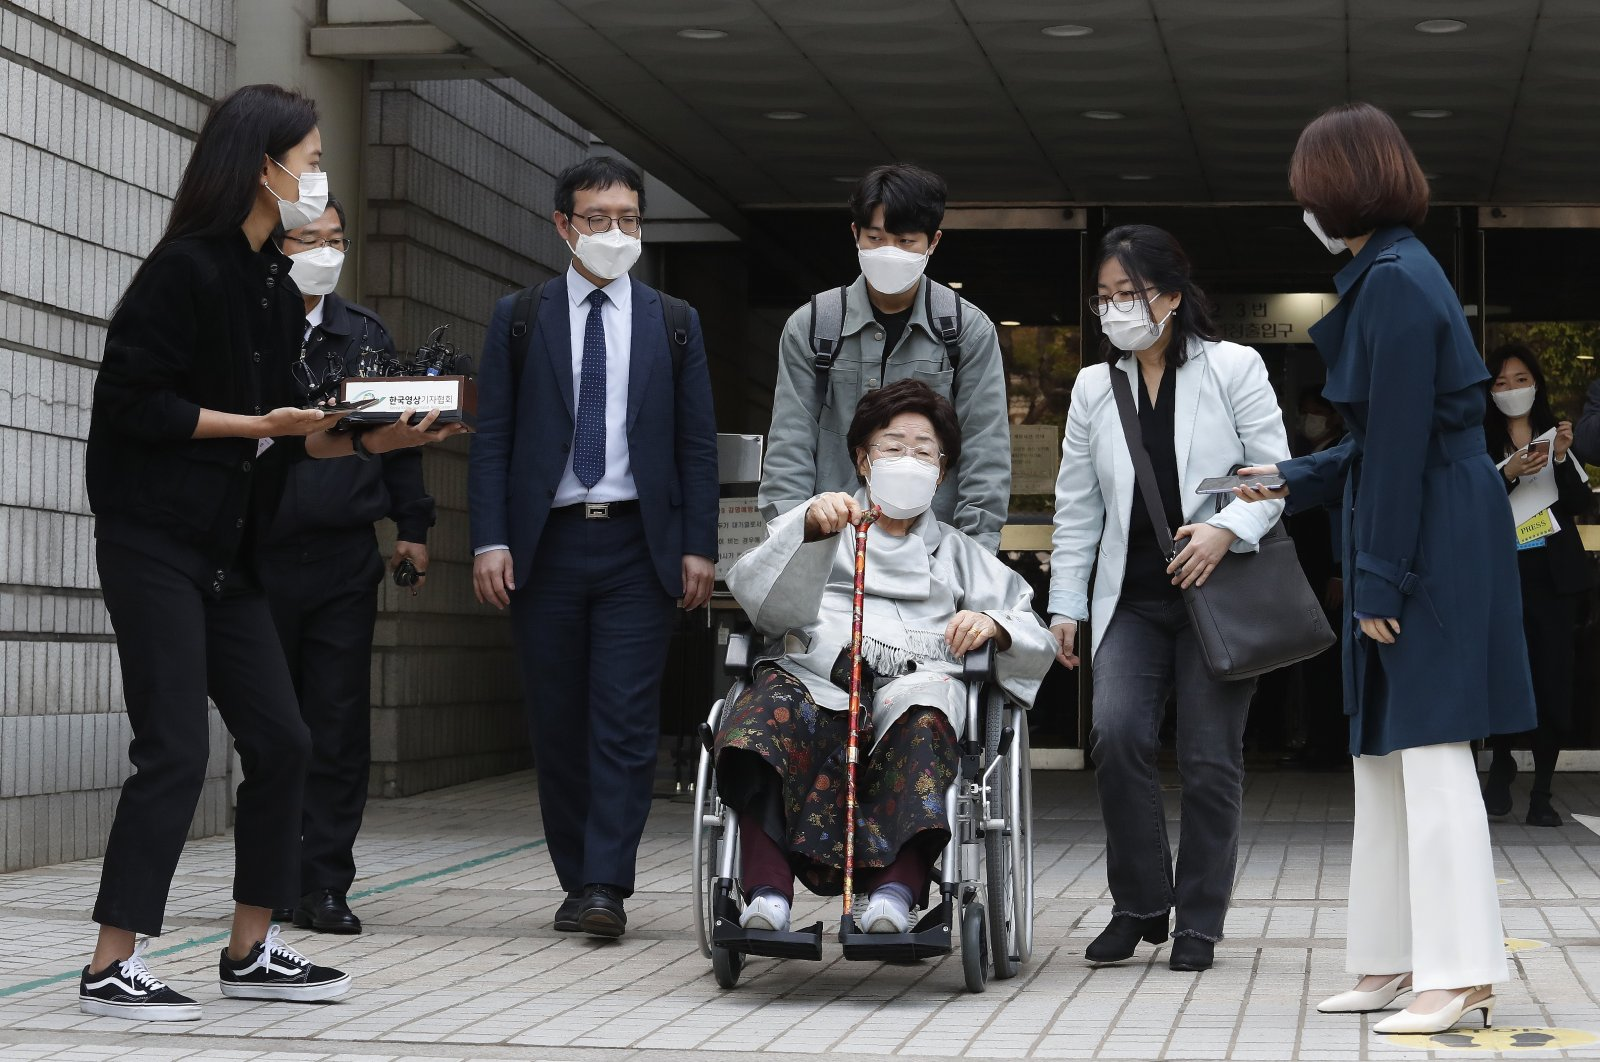 Former South Korean comfort woman Lee Yong-soo in a wheelchair leaves the Seoul Central District Court in Seoul, South Korea, Wednesday, April 21, 2021. (AP Photo)